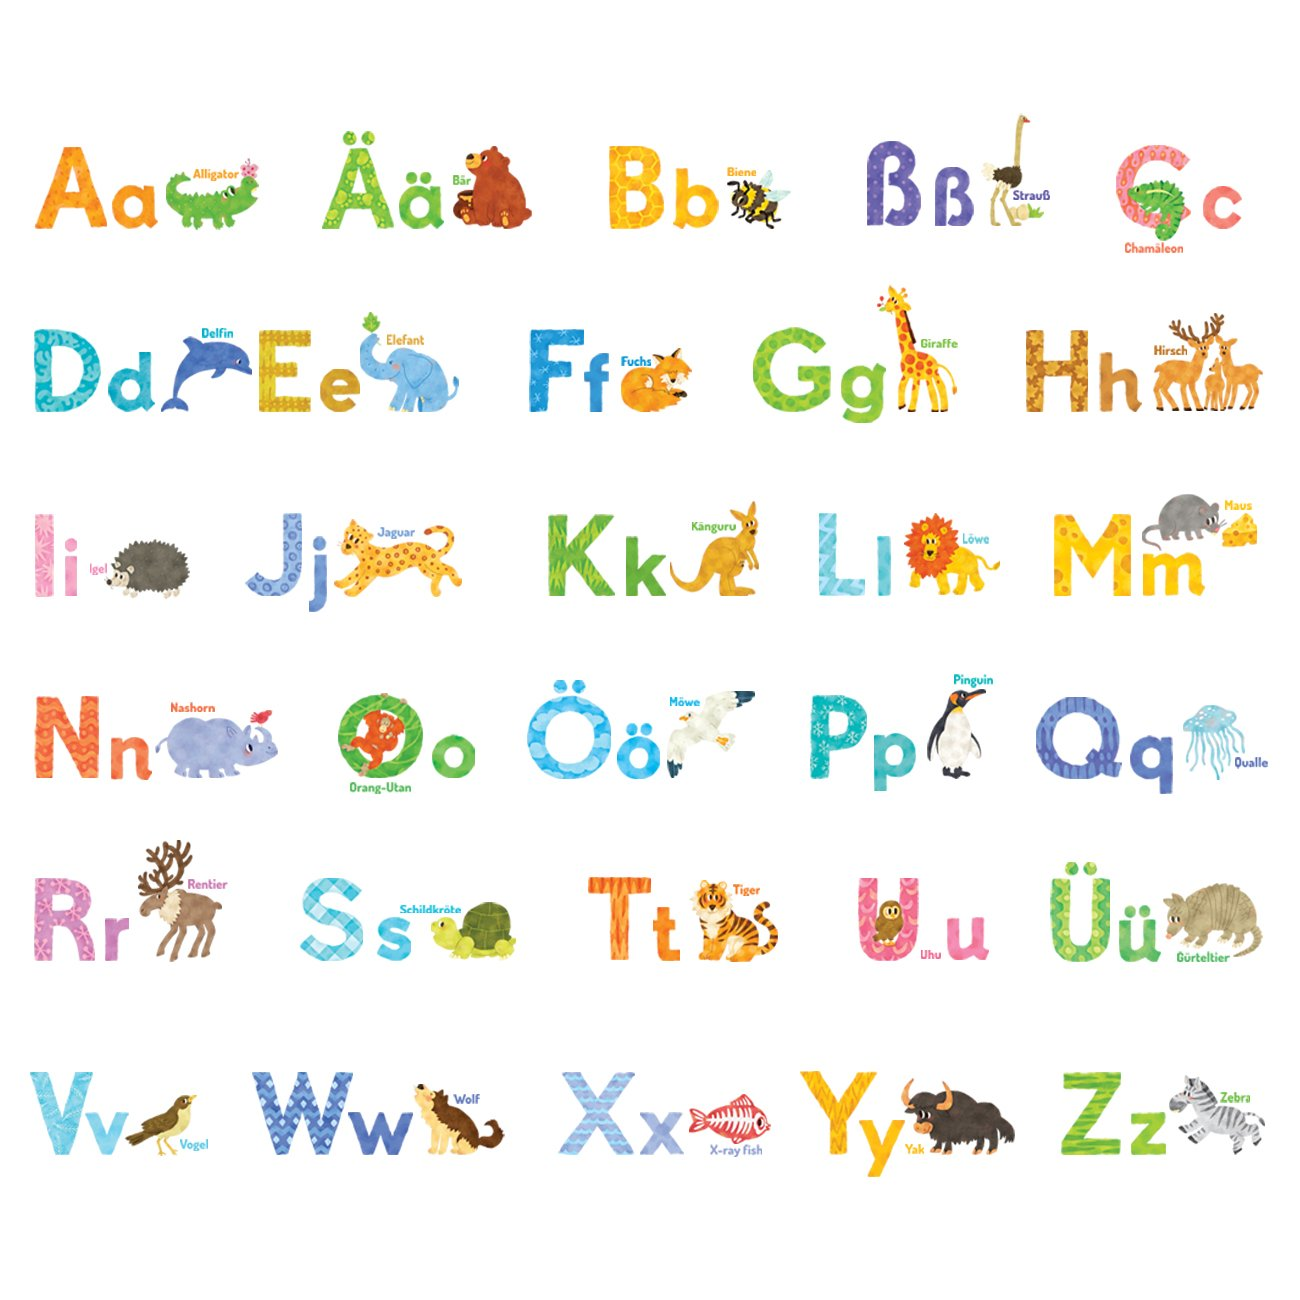 Decowall DW-1808 Watercolour Animal German Alphabet Kids Wall Stickers Wall Decals Peel and Stick Removable Wall Stickers for Kids Nursery Bedroom Living Room